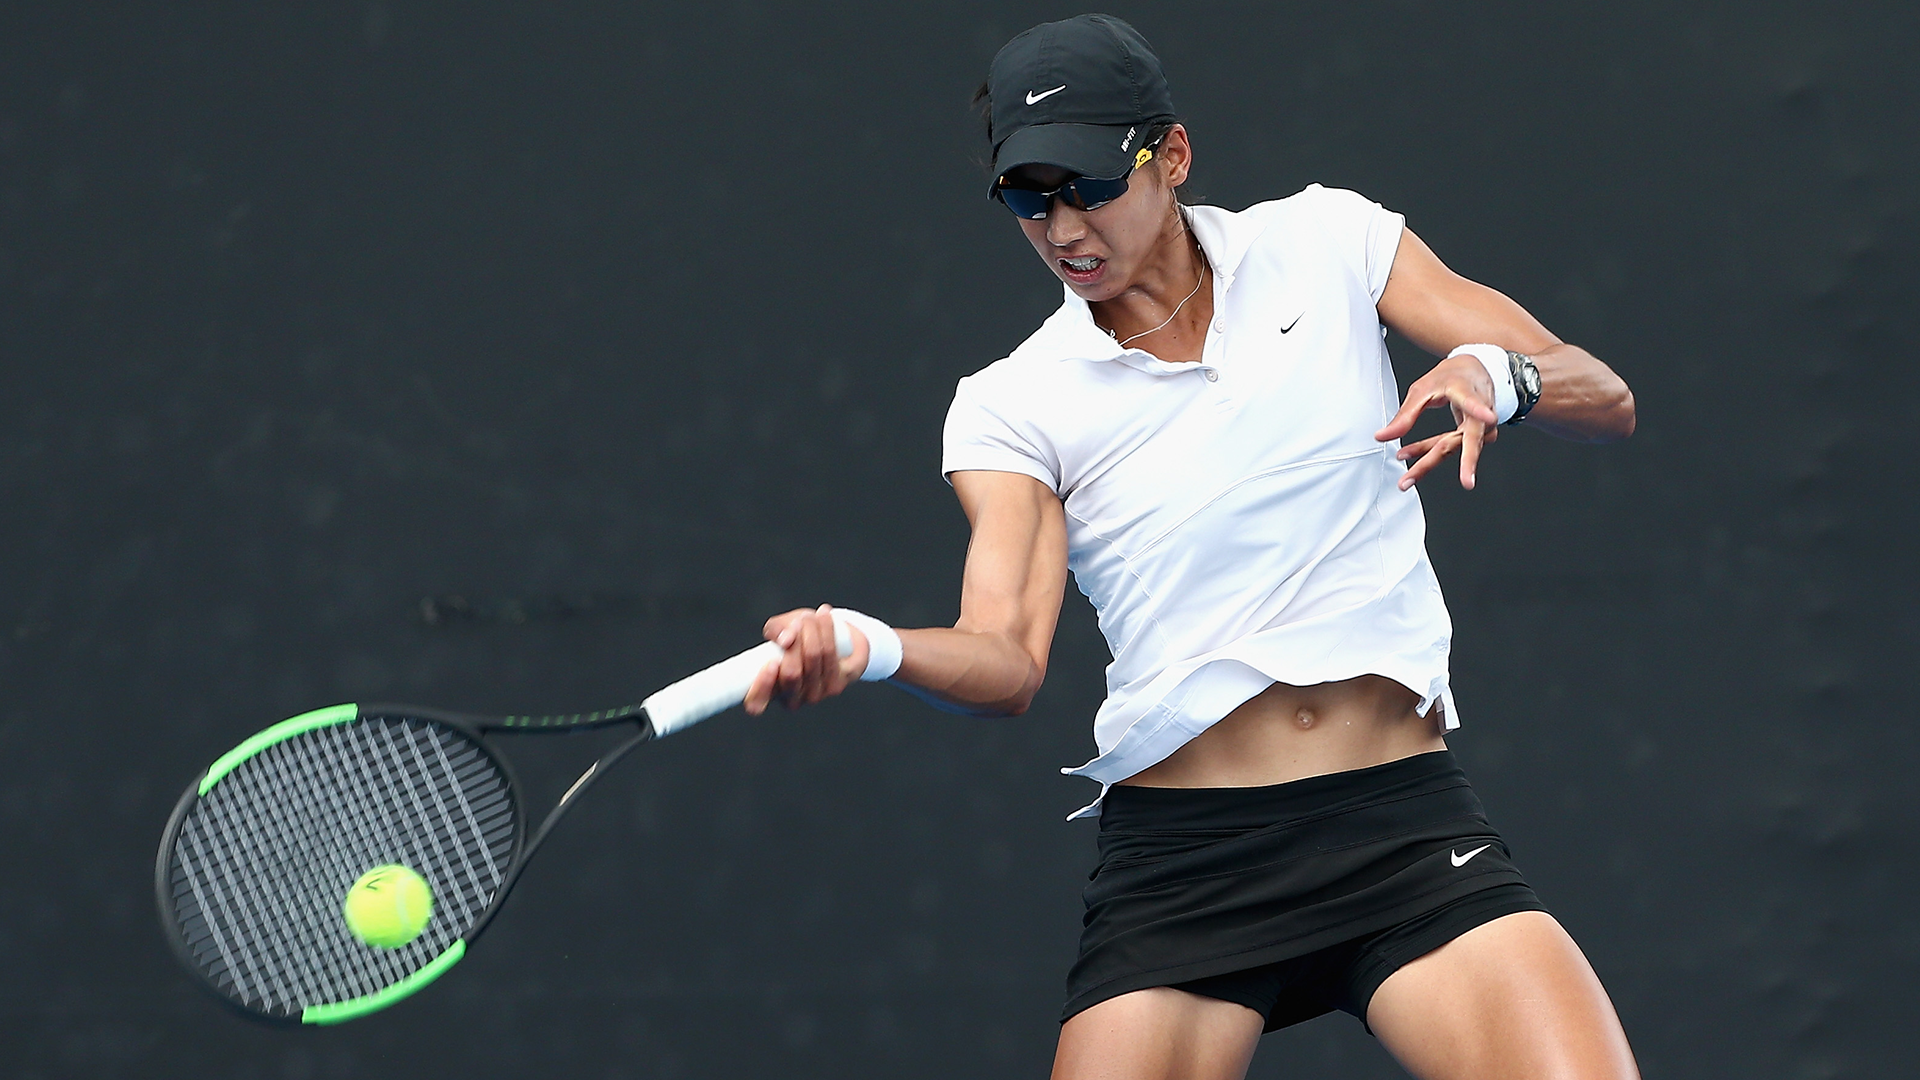 Australian Open: Aussie Astra Sharma qualifies for her first Grand Slam | Sporting News